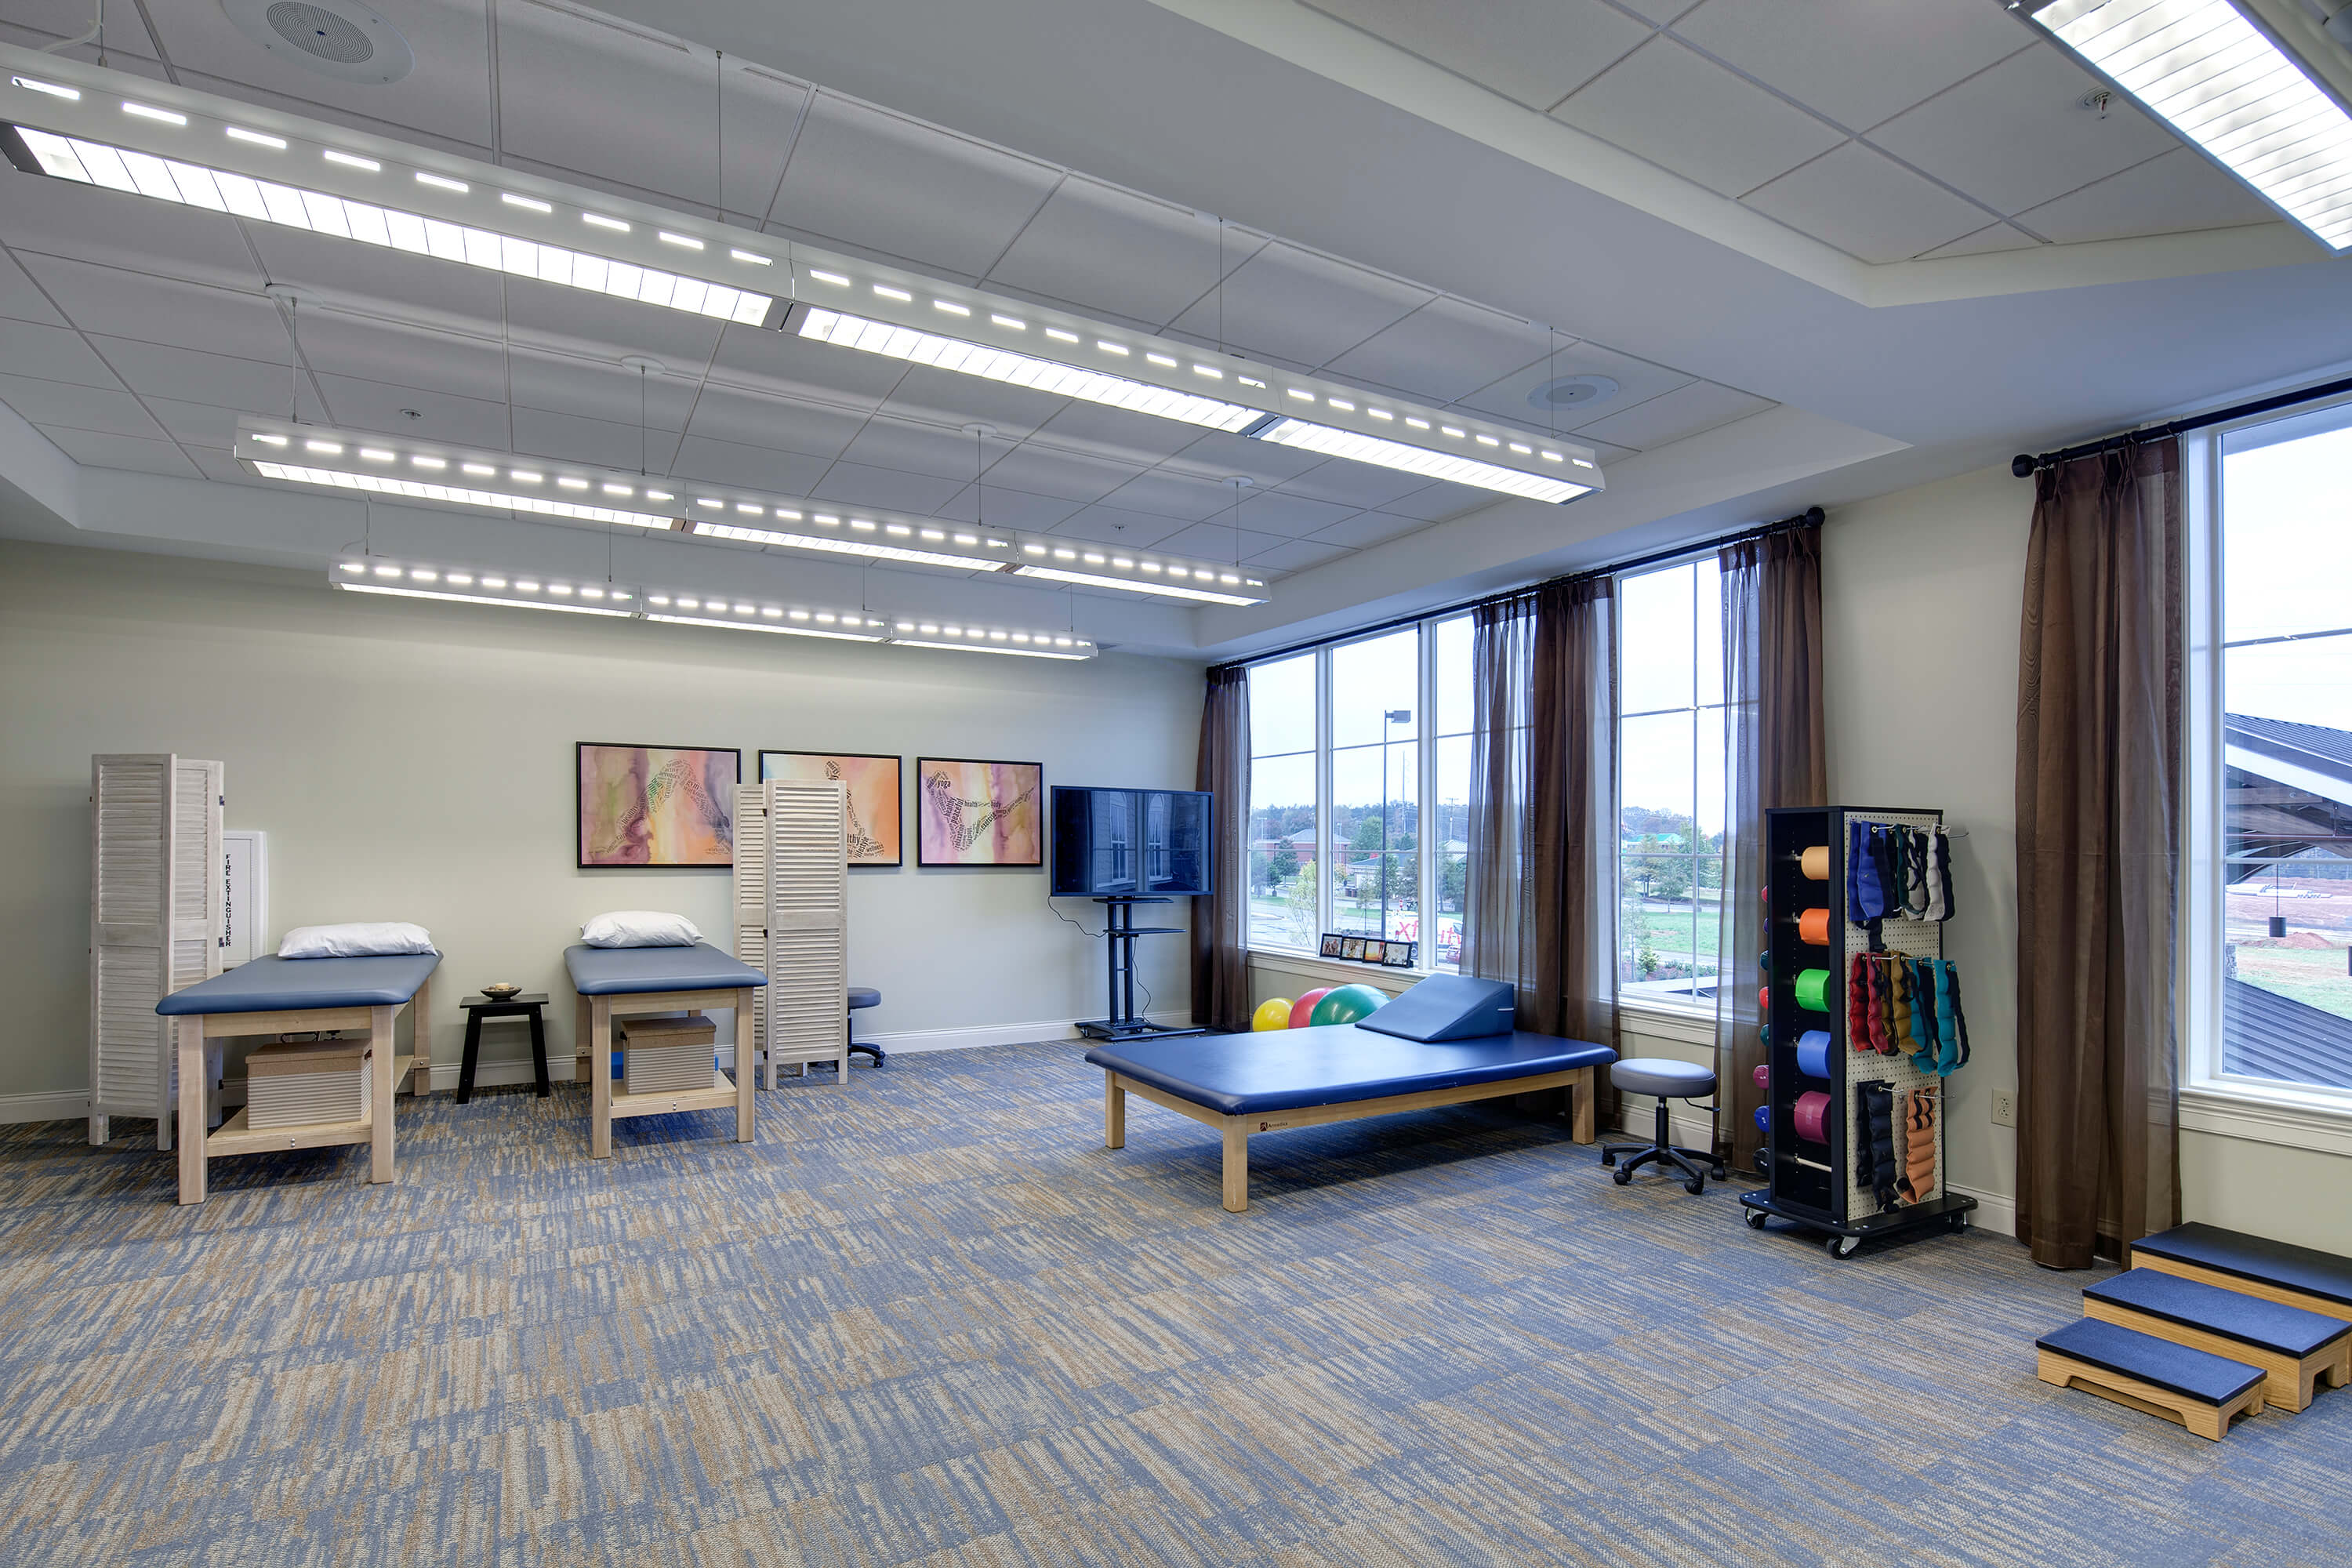 arbor-terrace-of-johns-creek-fitness-and-therapy-rooms